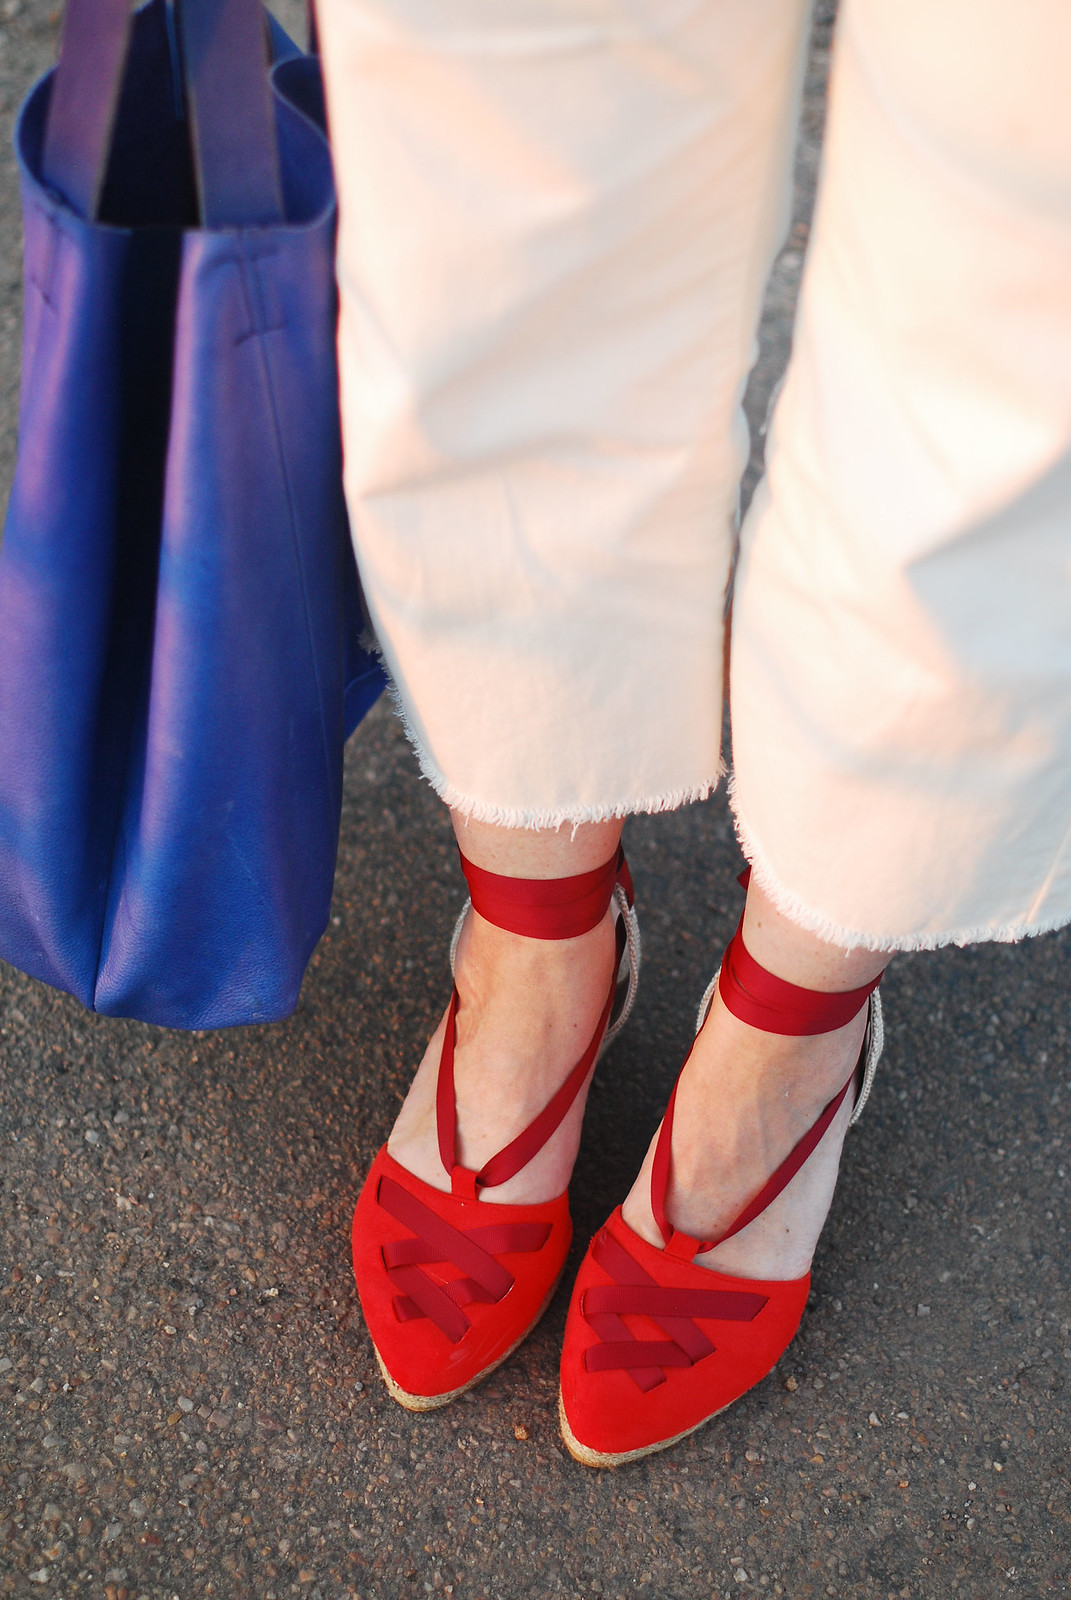 Sleeveless summer overalls: Red, white and blue outfit - red wedge espadrilles, white dungarees, blue slouchy bag   Not Dressed As Lamb